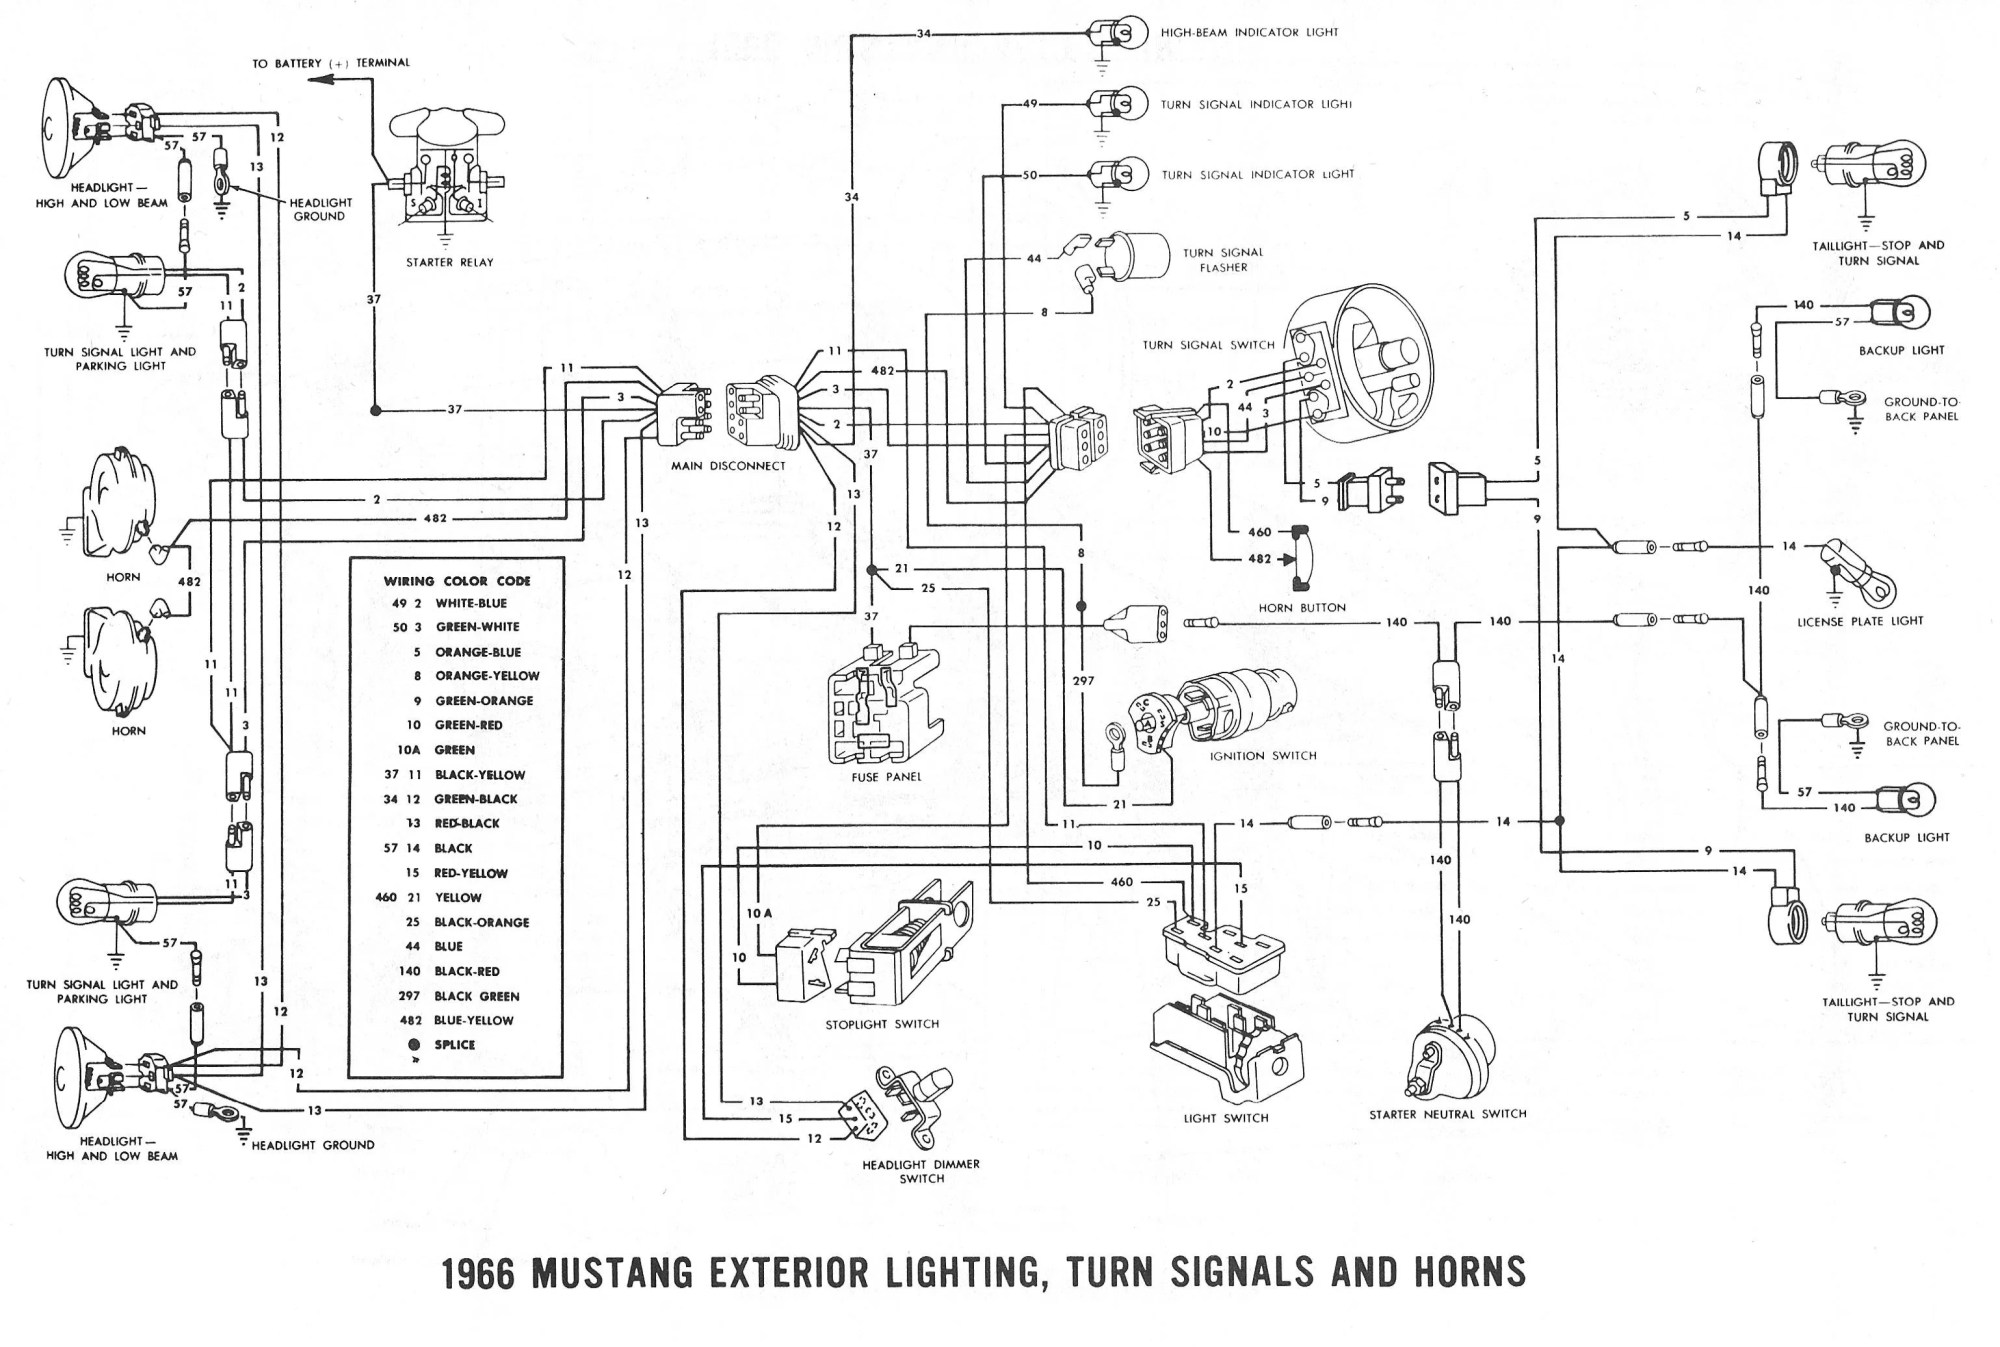 hight resolution of exterior lighting diagram interior lighting diagram 1966 mustang 1966 mustang backup light wiring diagram 1965 mustang